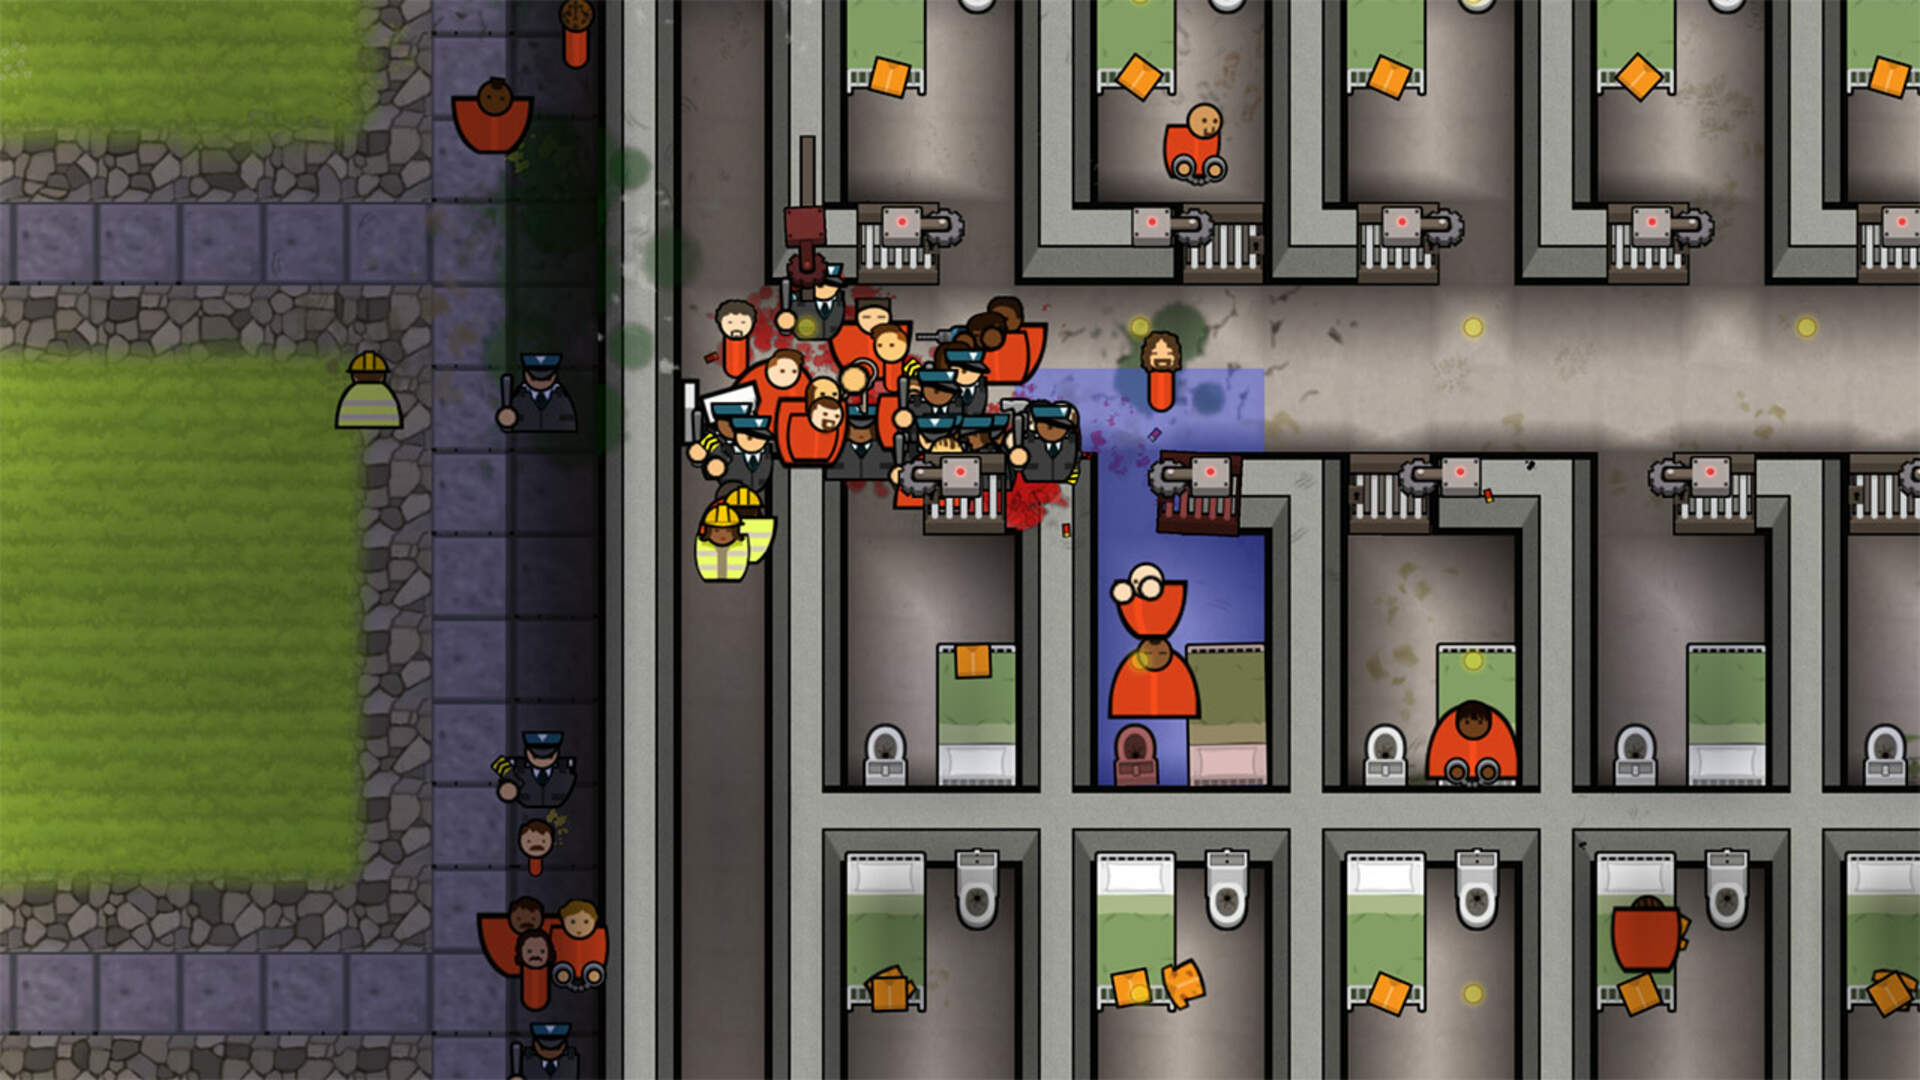 Prison Architect PS4 Review: Sim Penitentiary